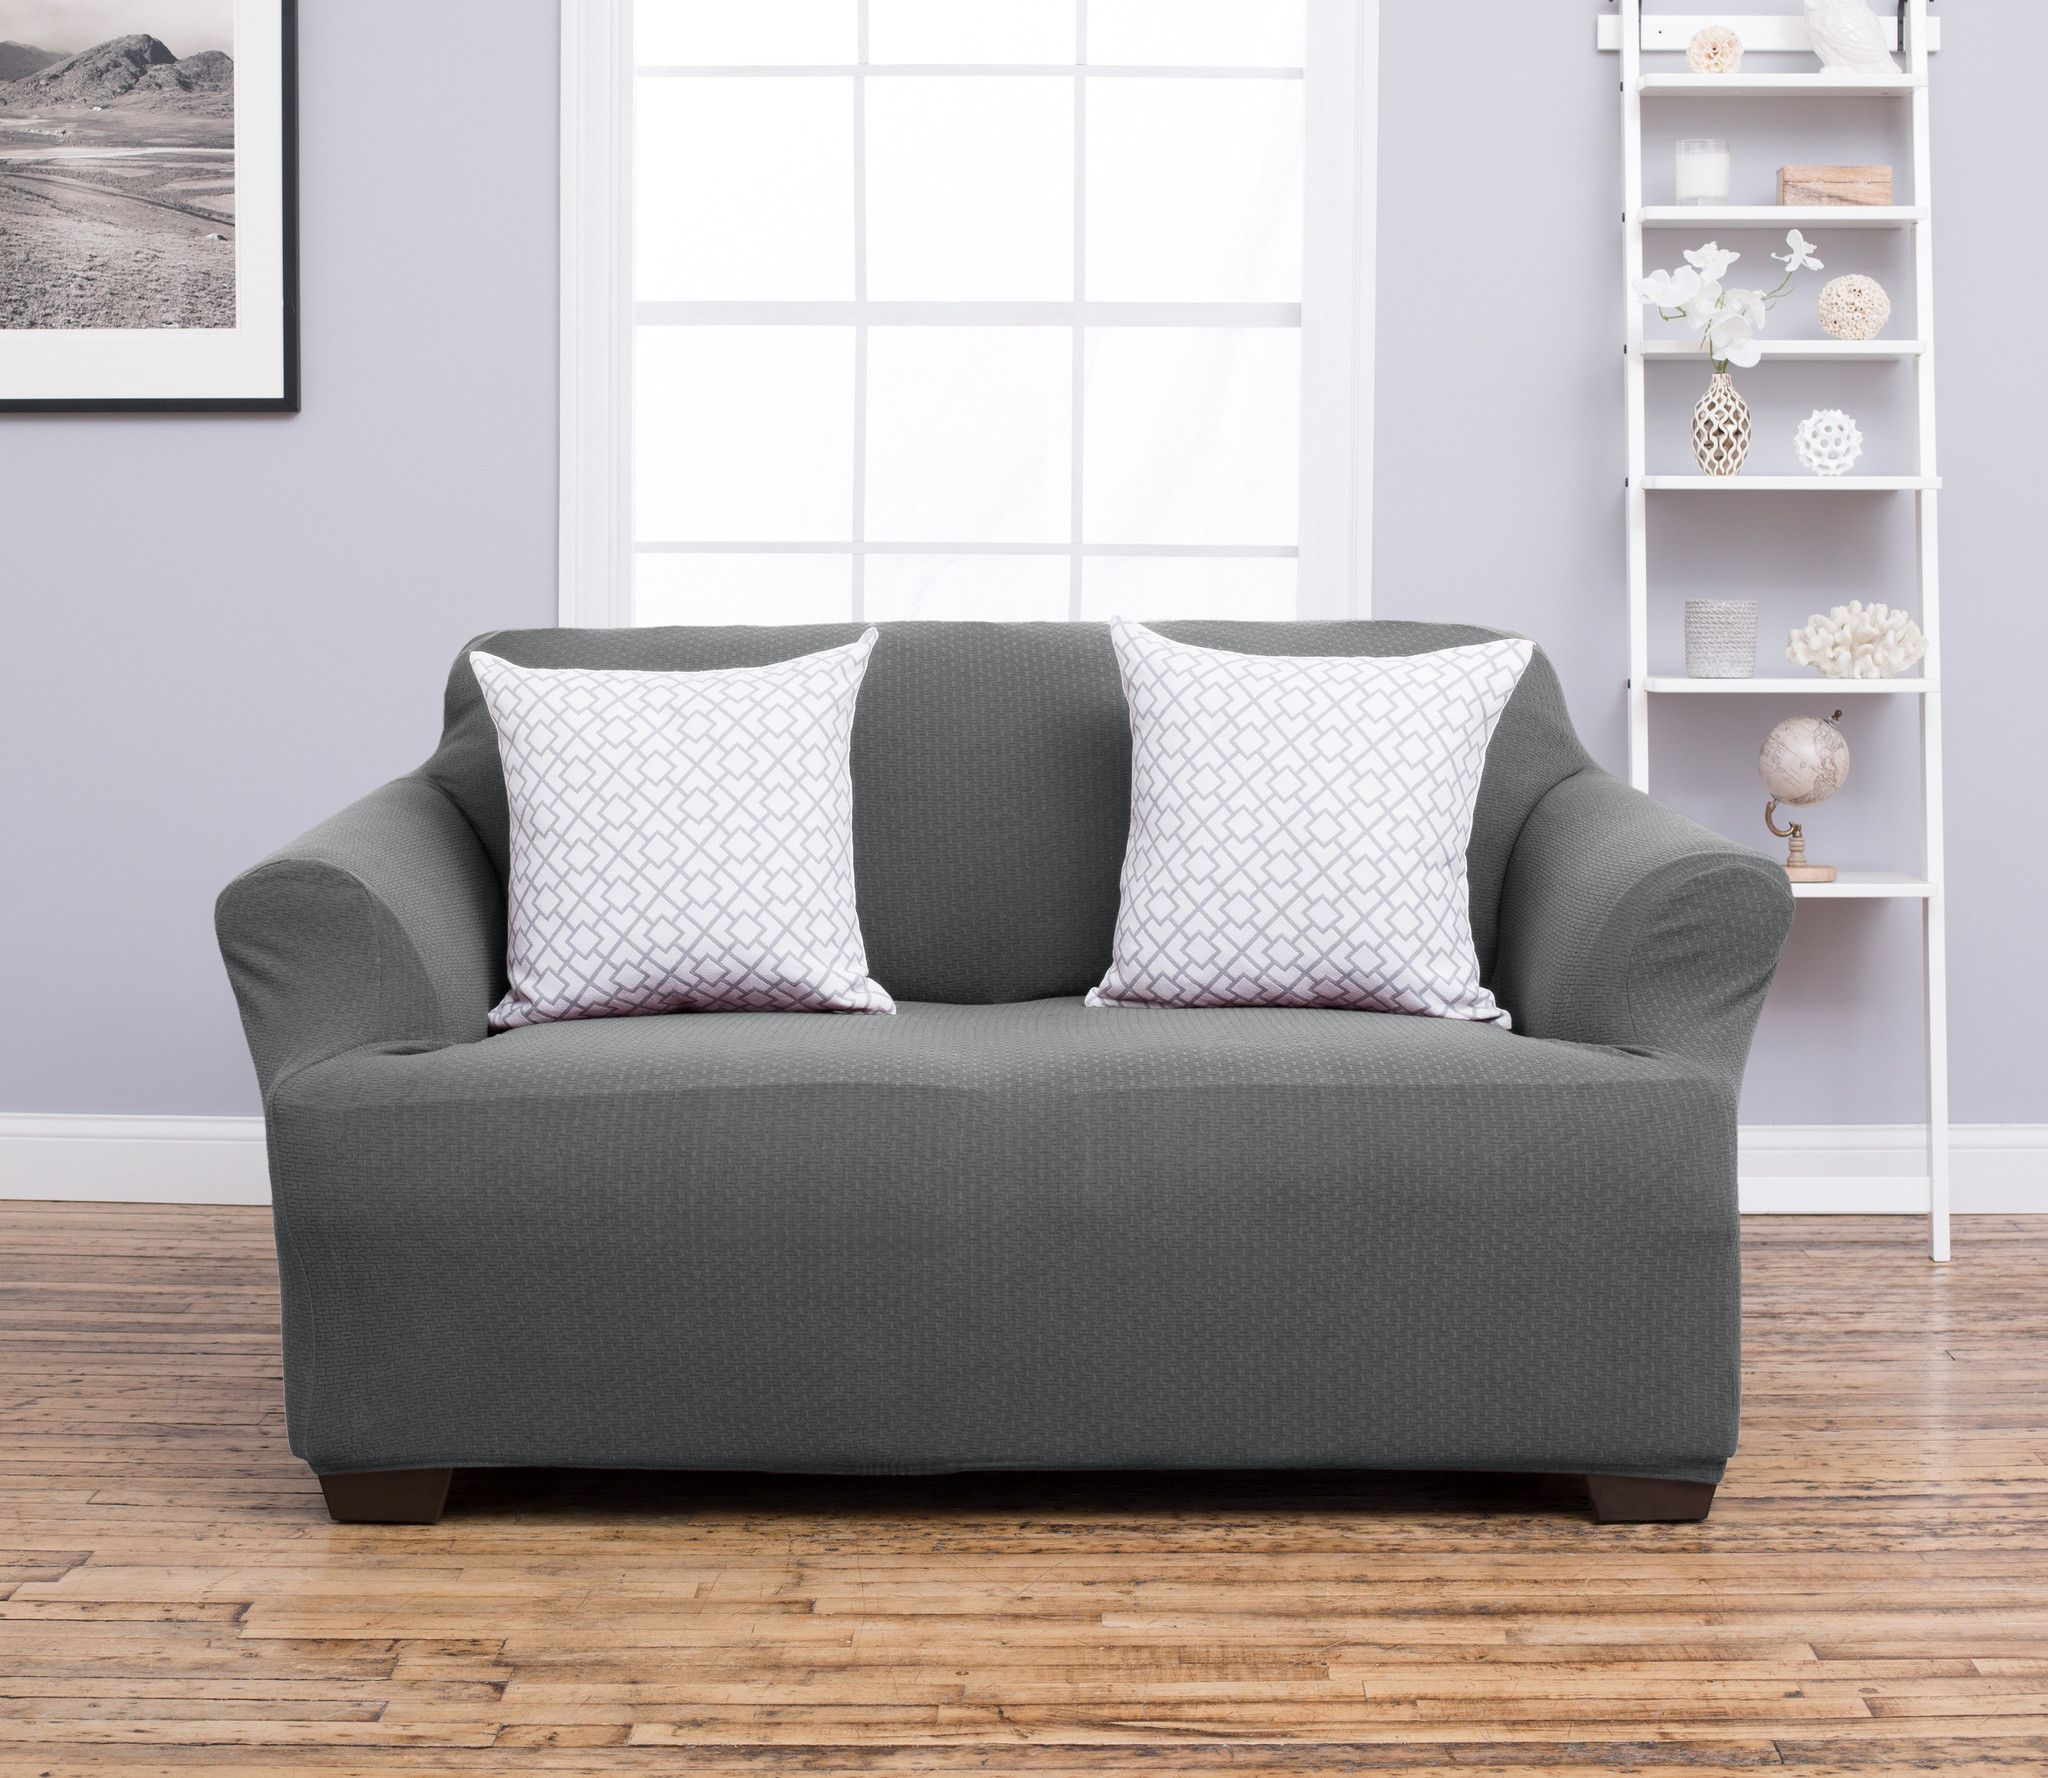 Amalio Collection Strapless Slipcover. Form Fit, Slip Resistant, Stylish Furniture Shield / Protector Featuring Plush, Heavyweight Fabric